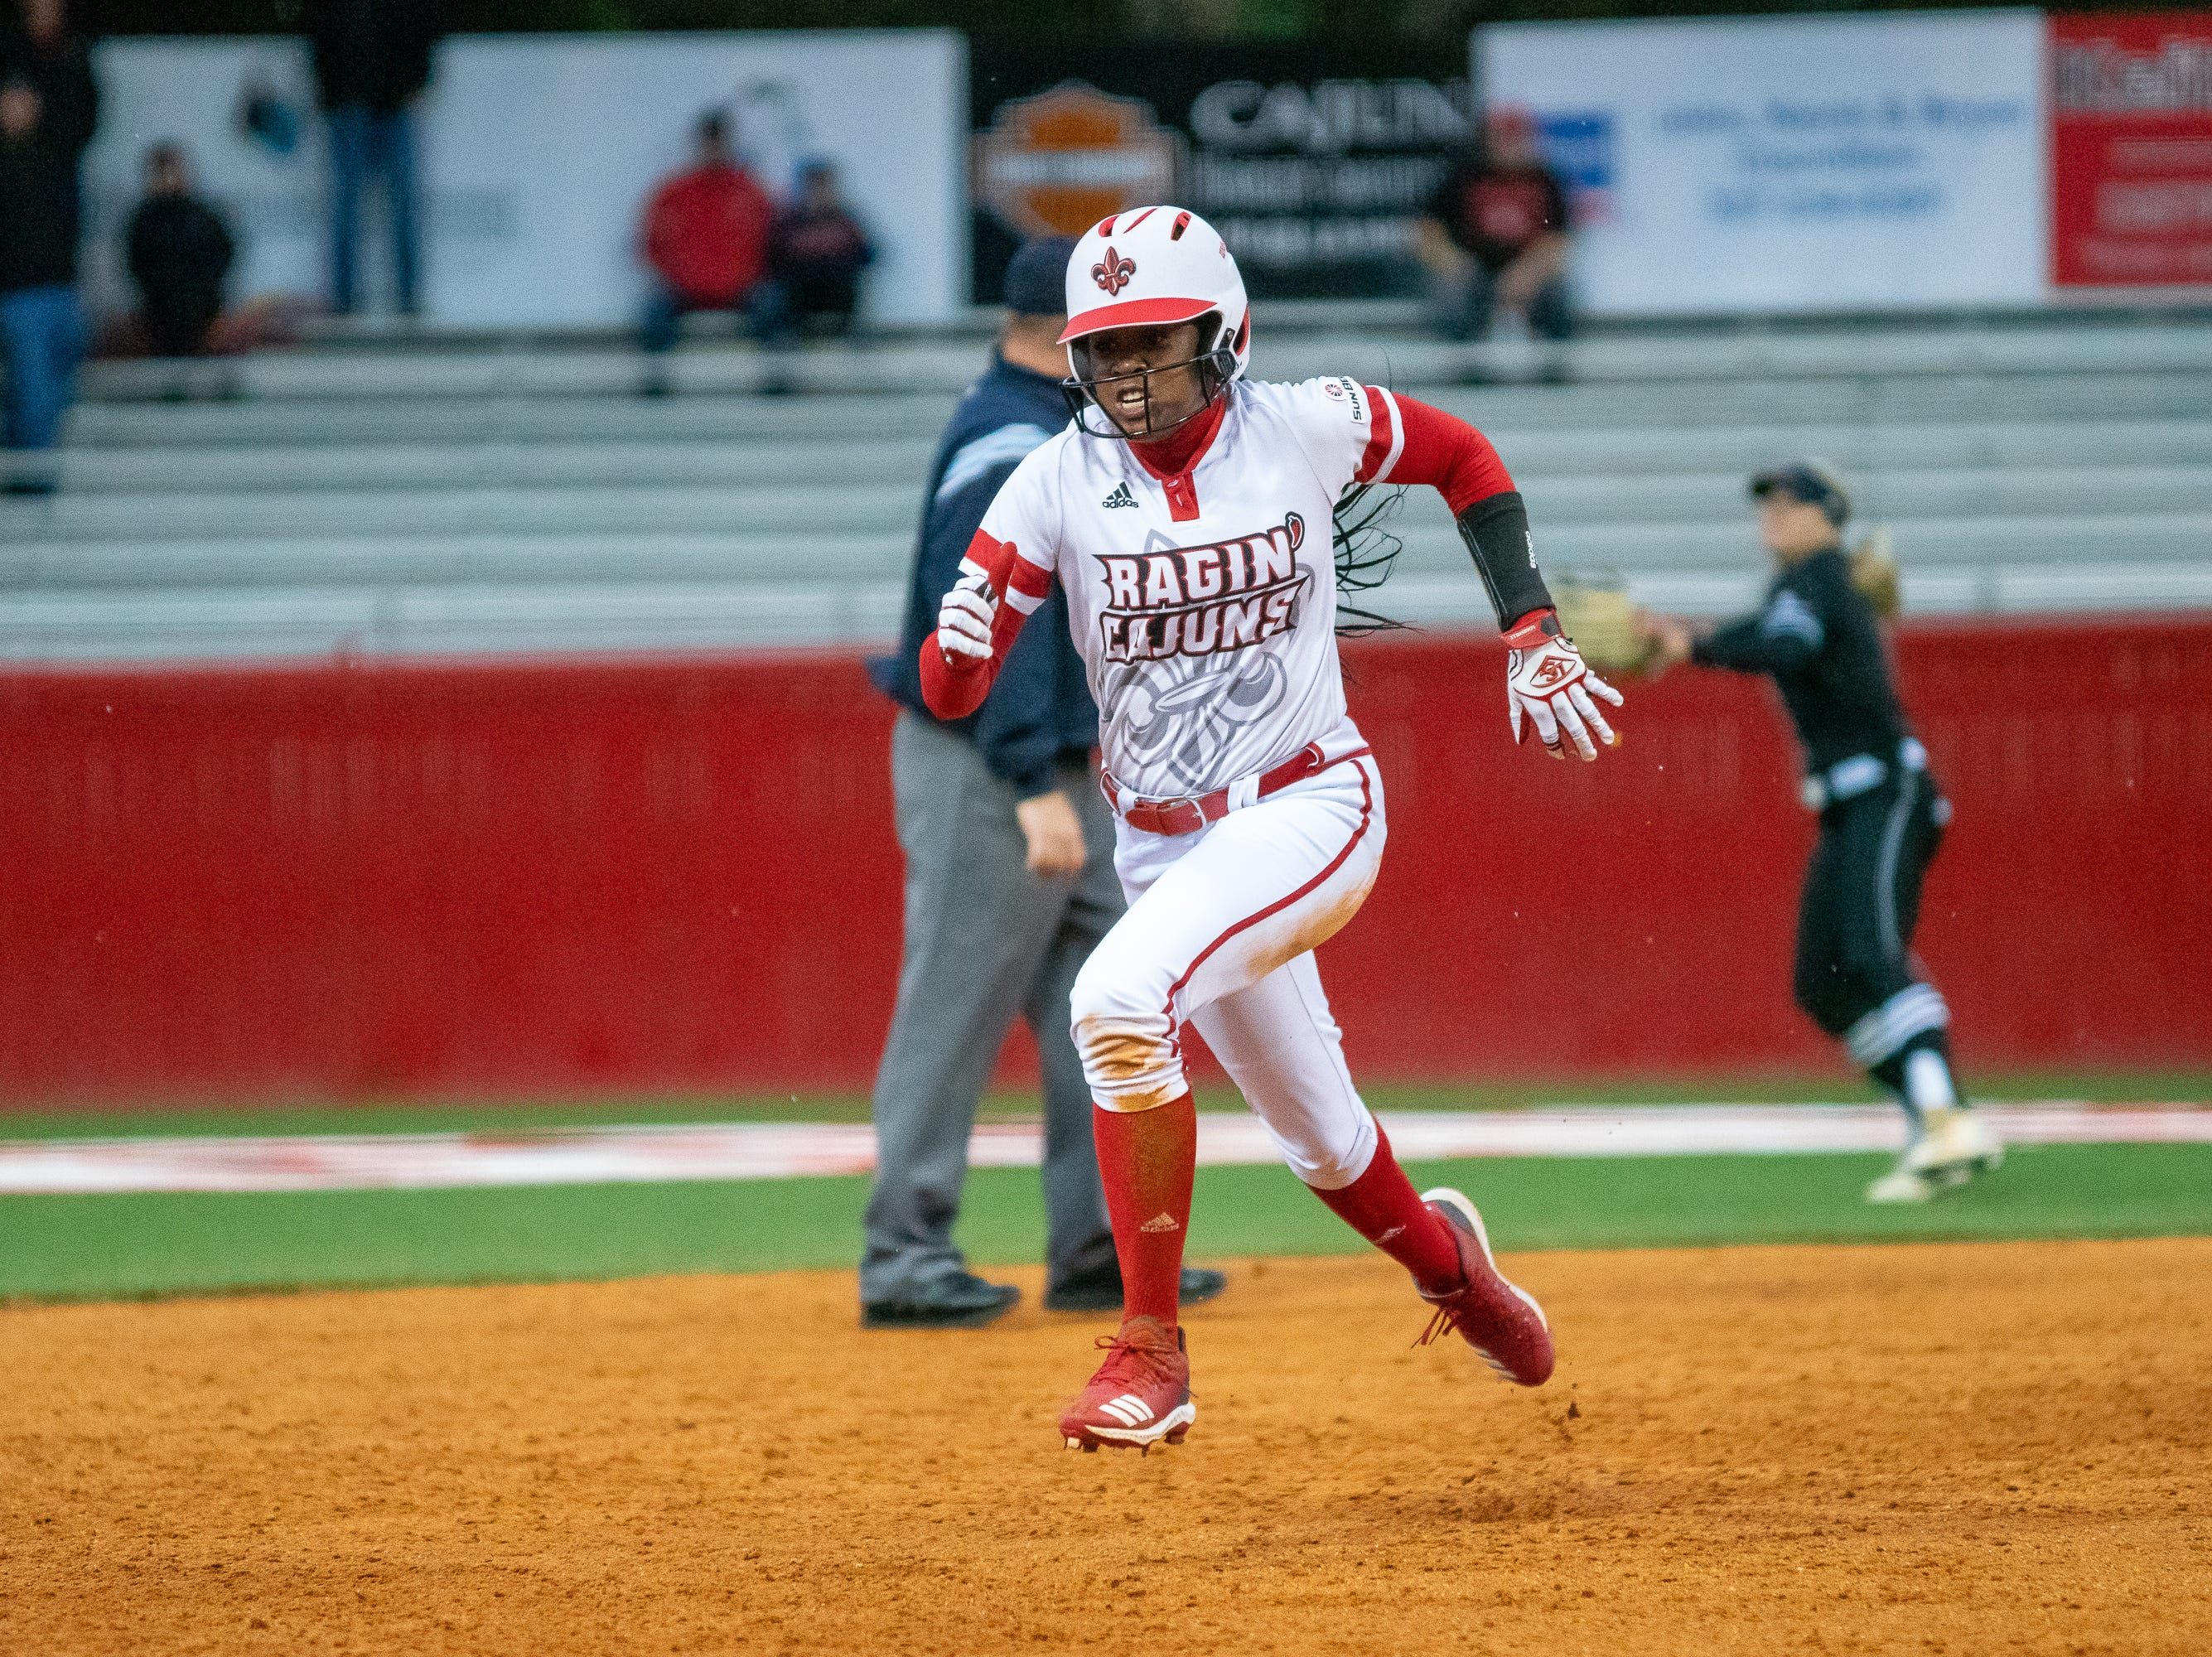 UL's Raina O'Neal sprints to third base as the Ragin' Cajuns take on the Troy Trojans at Lamson Park, Yvette Girouard Field on Friday, March 15, 2019.